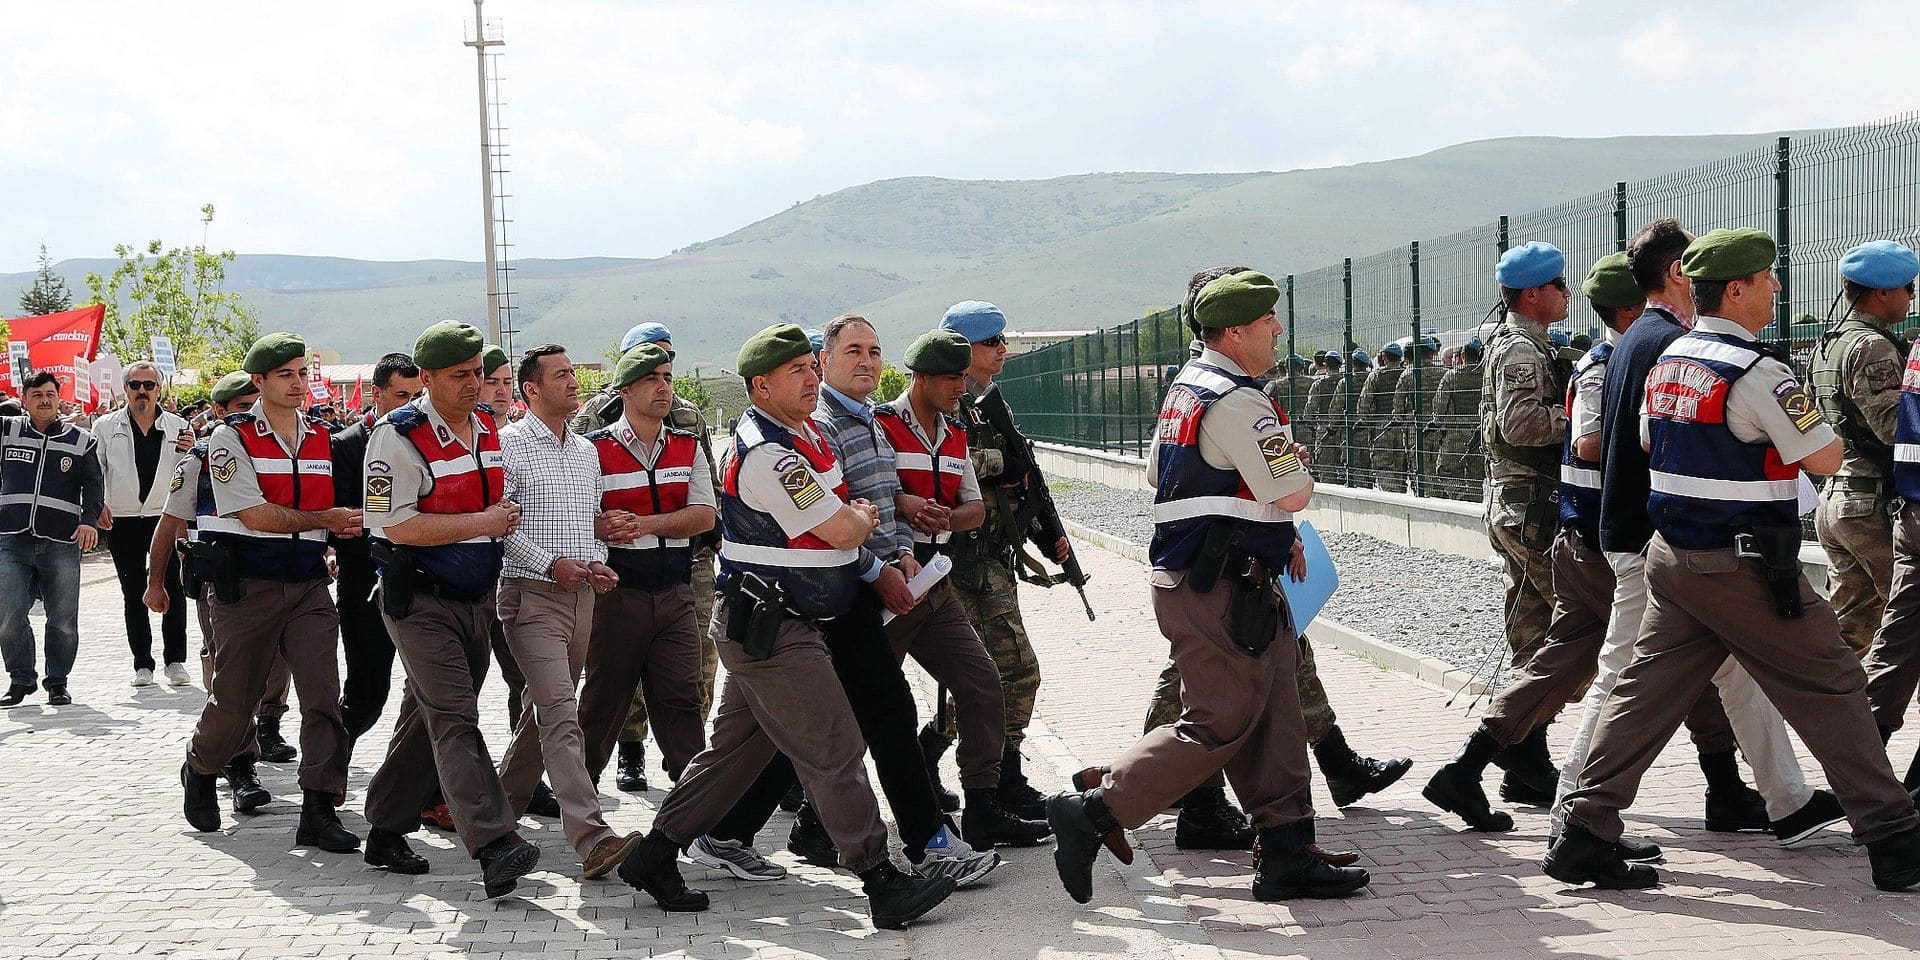 Arrested soldiers accused of being involved in an attempted coup d'etat on 15 July 2016 in Turkey, are accompanied by Turkish soldiers as they arrive at the court inside the Sincan Prison in Ankara, on May 22, 2017 to be trialed. The trial opened on May 22, 2017 of more than 220 suspects, including over two dozen former Turkish generals, accused of being among the ringleaders of the attempted coup last year aimed at ousting President Recep Tayyip Erdogan. / AFP PHOTO / ADEM ALTAN